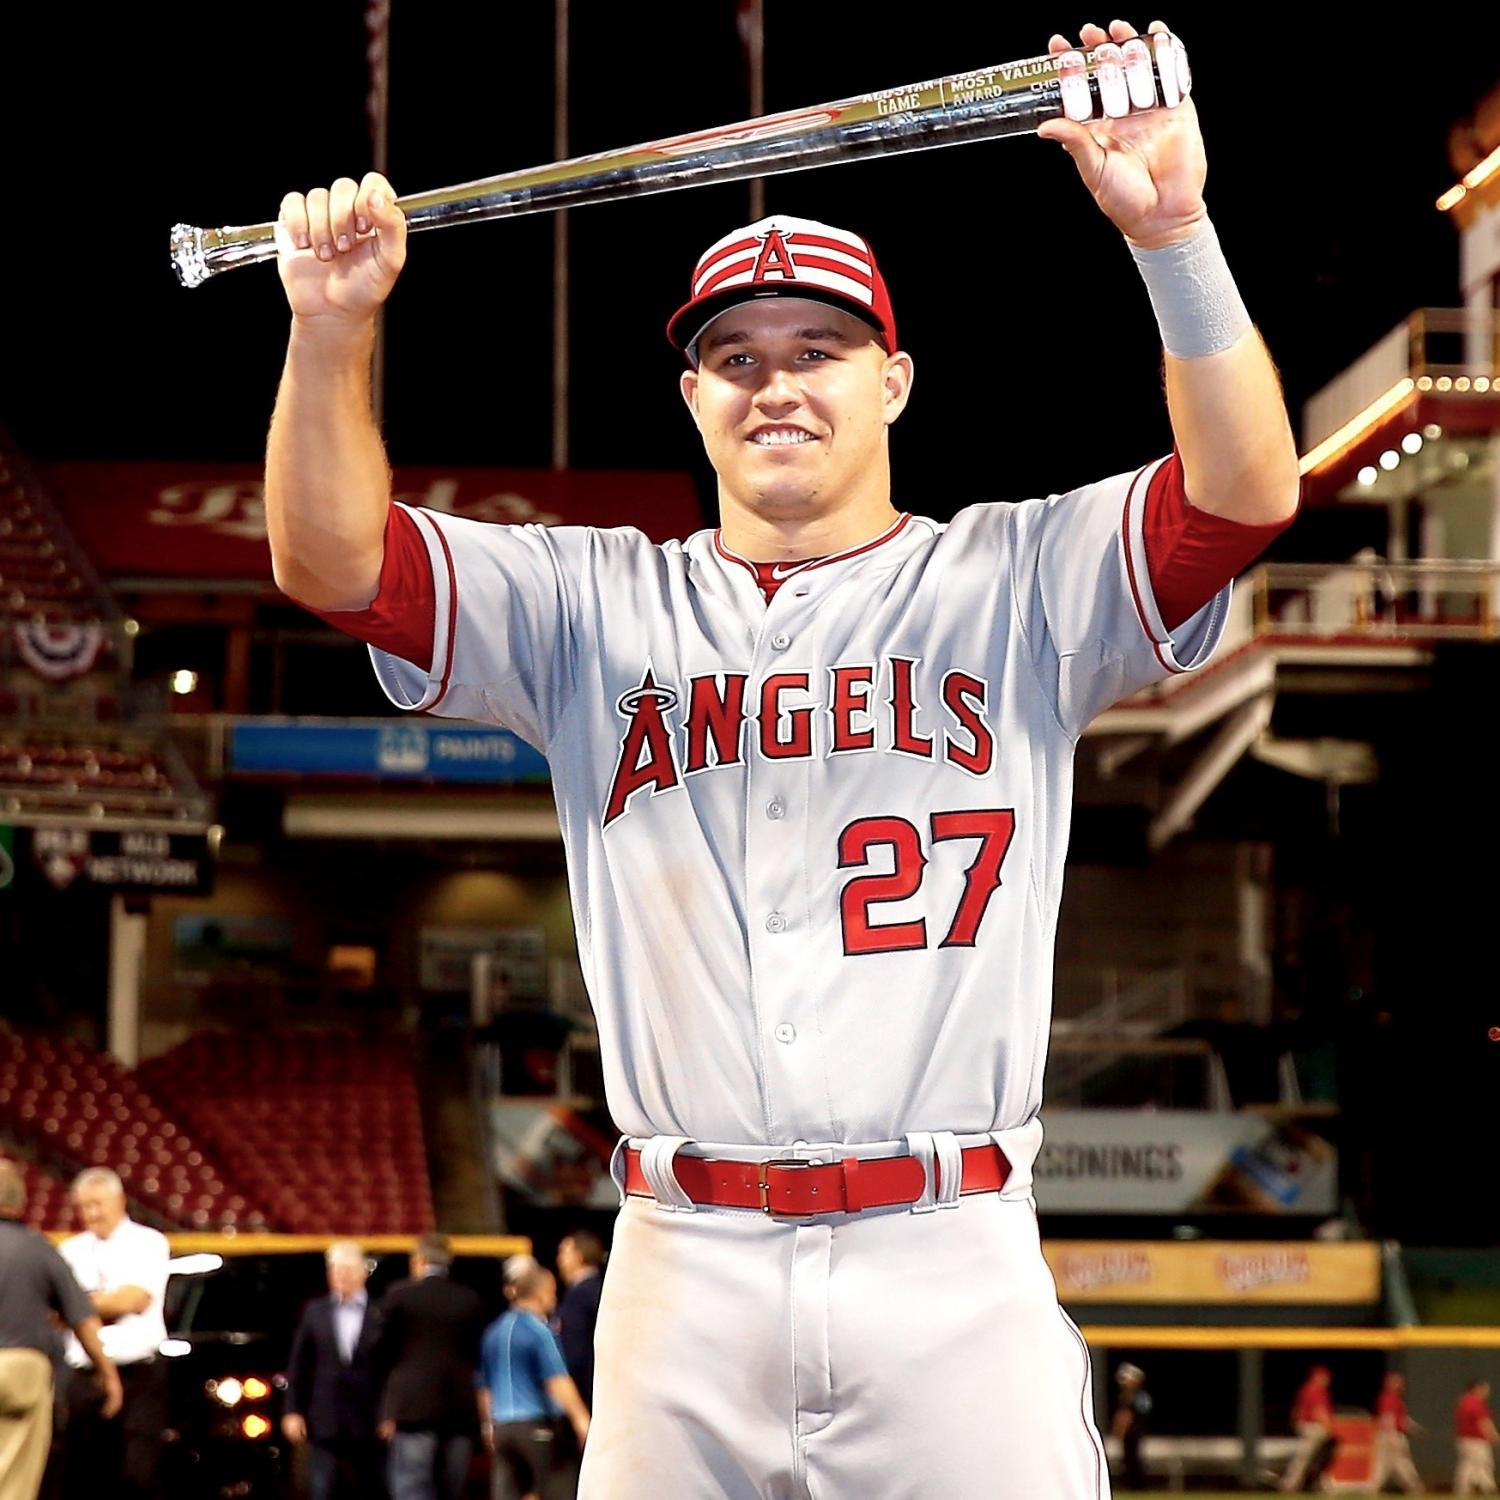 Completeist: 2014-2015 MLB All Star Game MVP